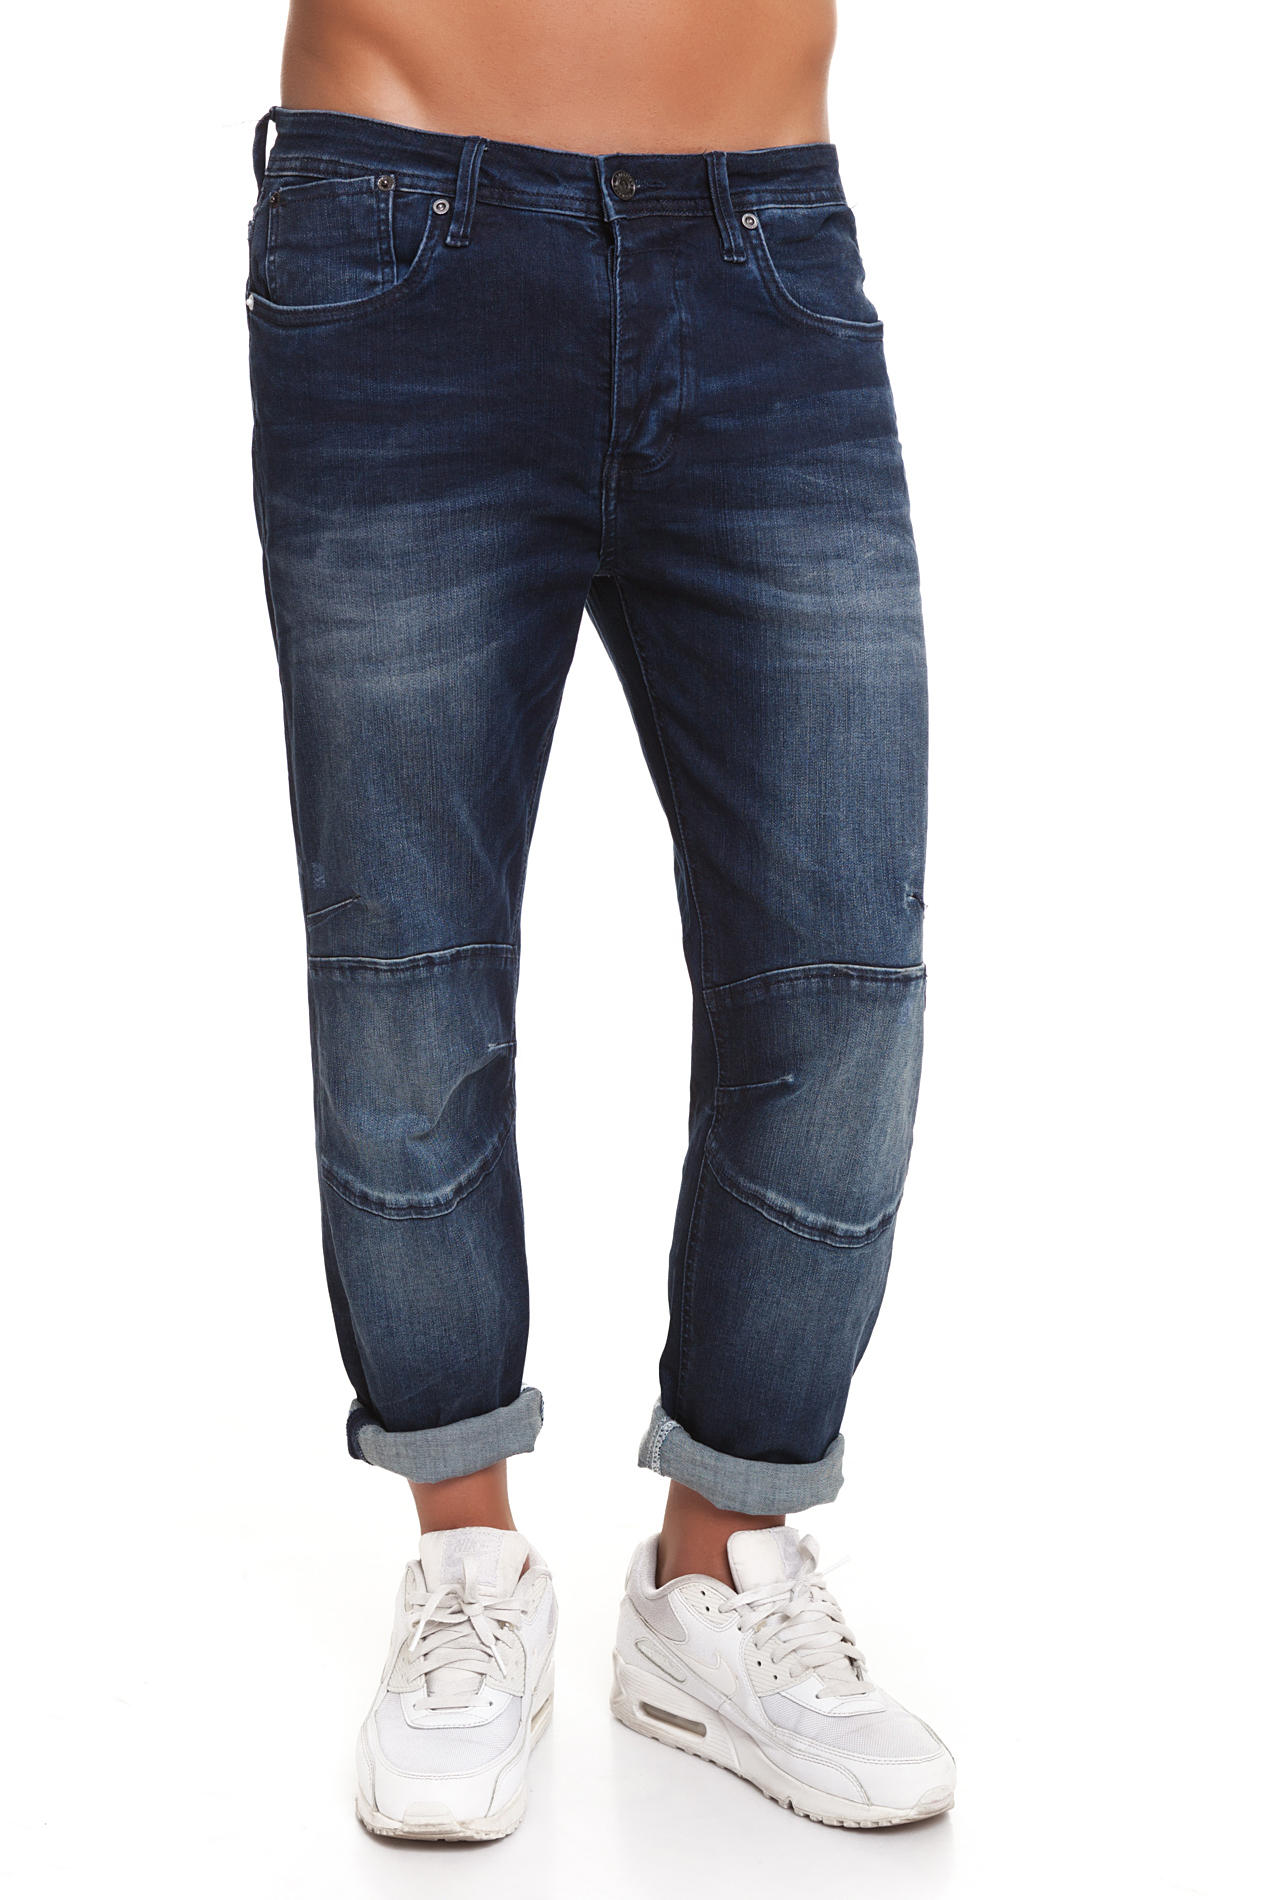 CR7 Jeans For Men Dark Blue Casual Jeans Casual Skinny Super Engineer With Pockets CRD031A